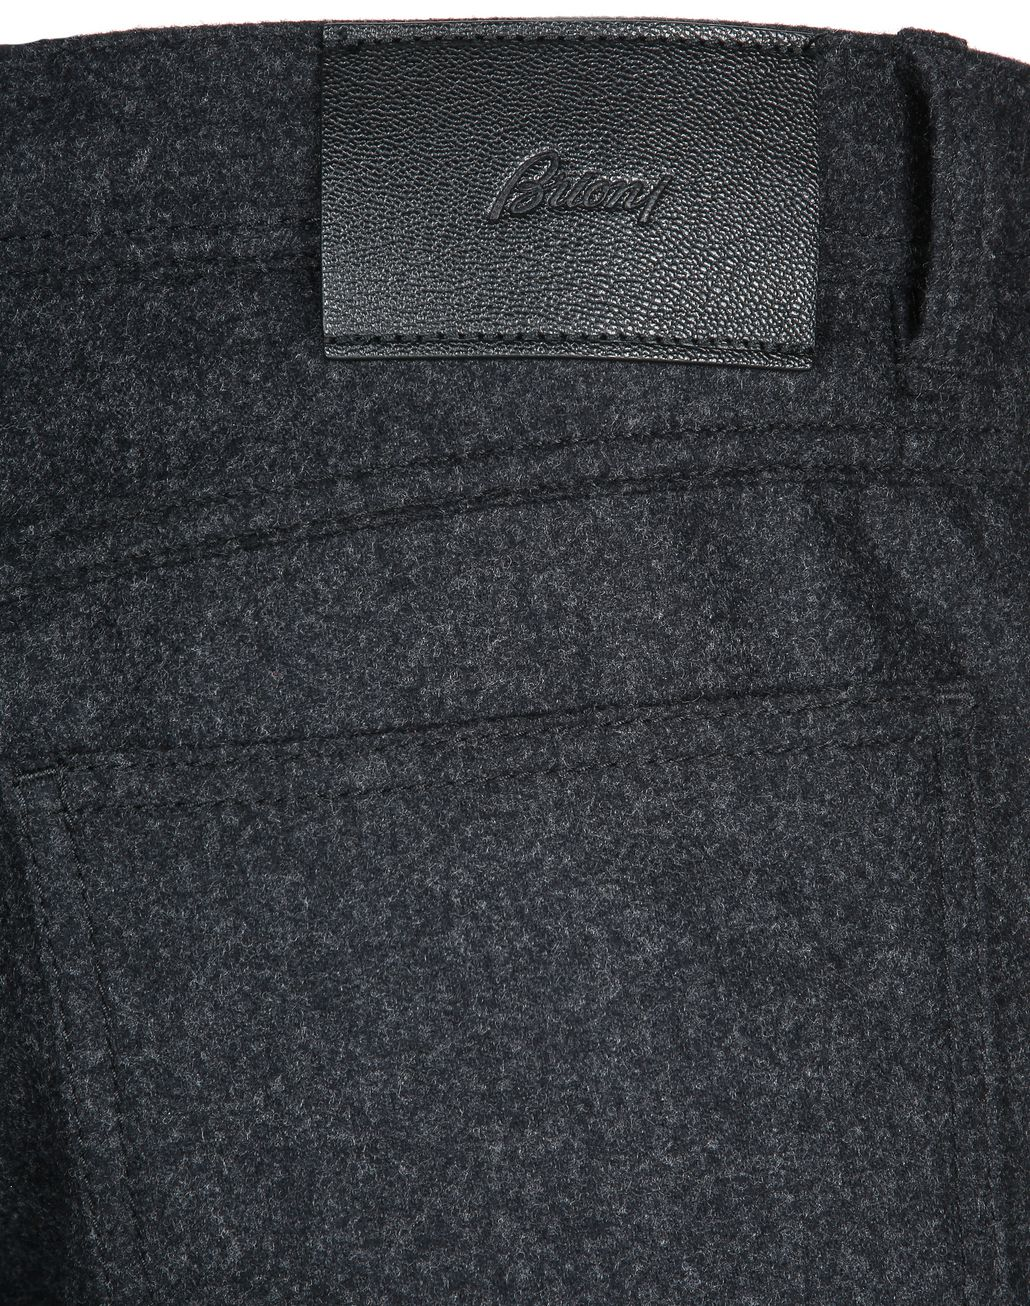 BRIONI Antrachite Trousers Trousers Man a